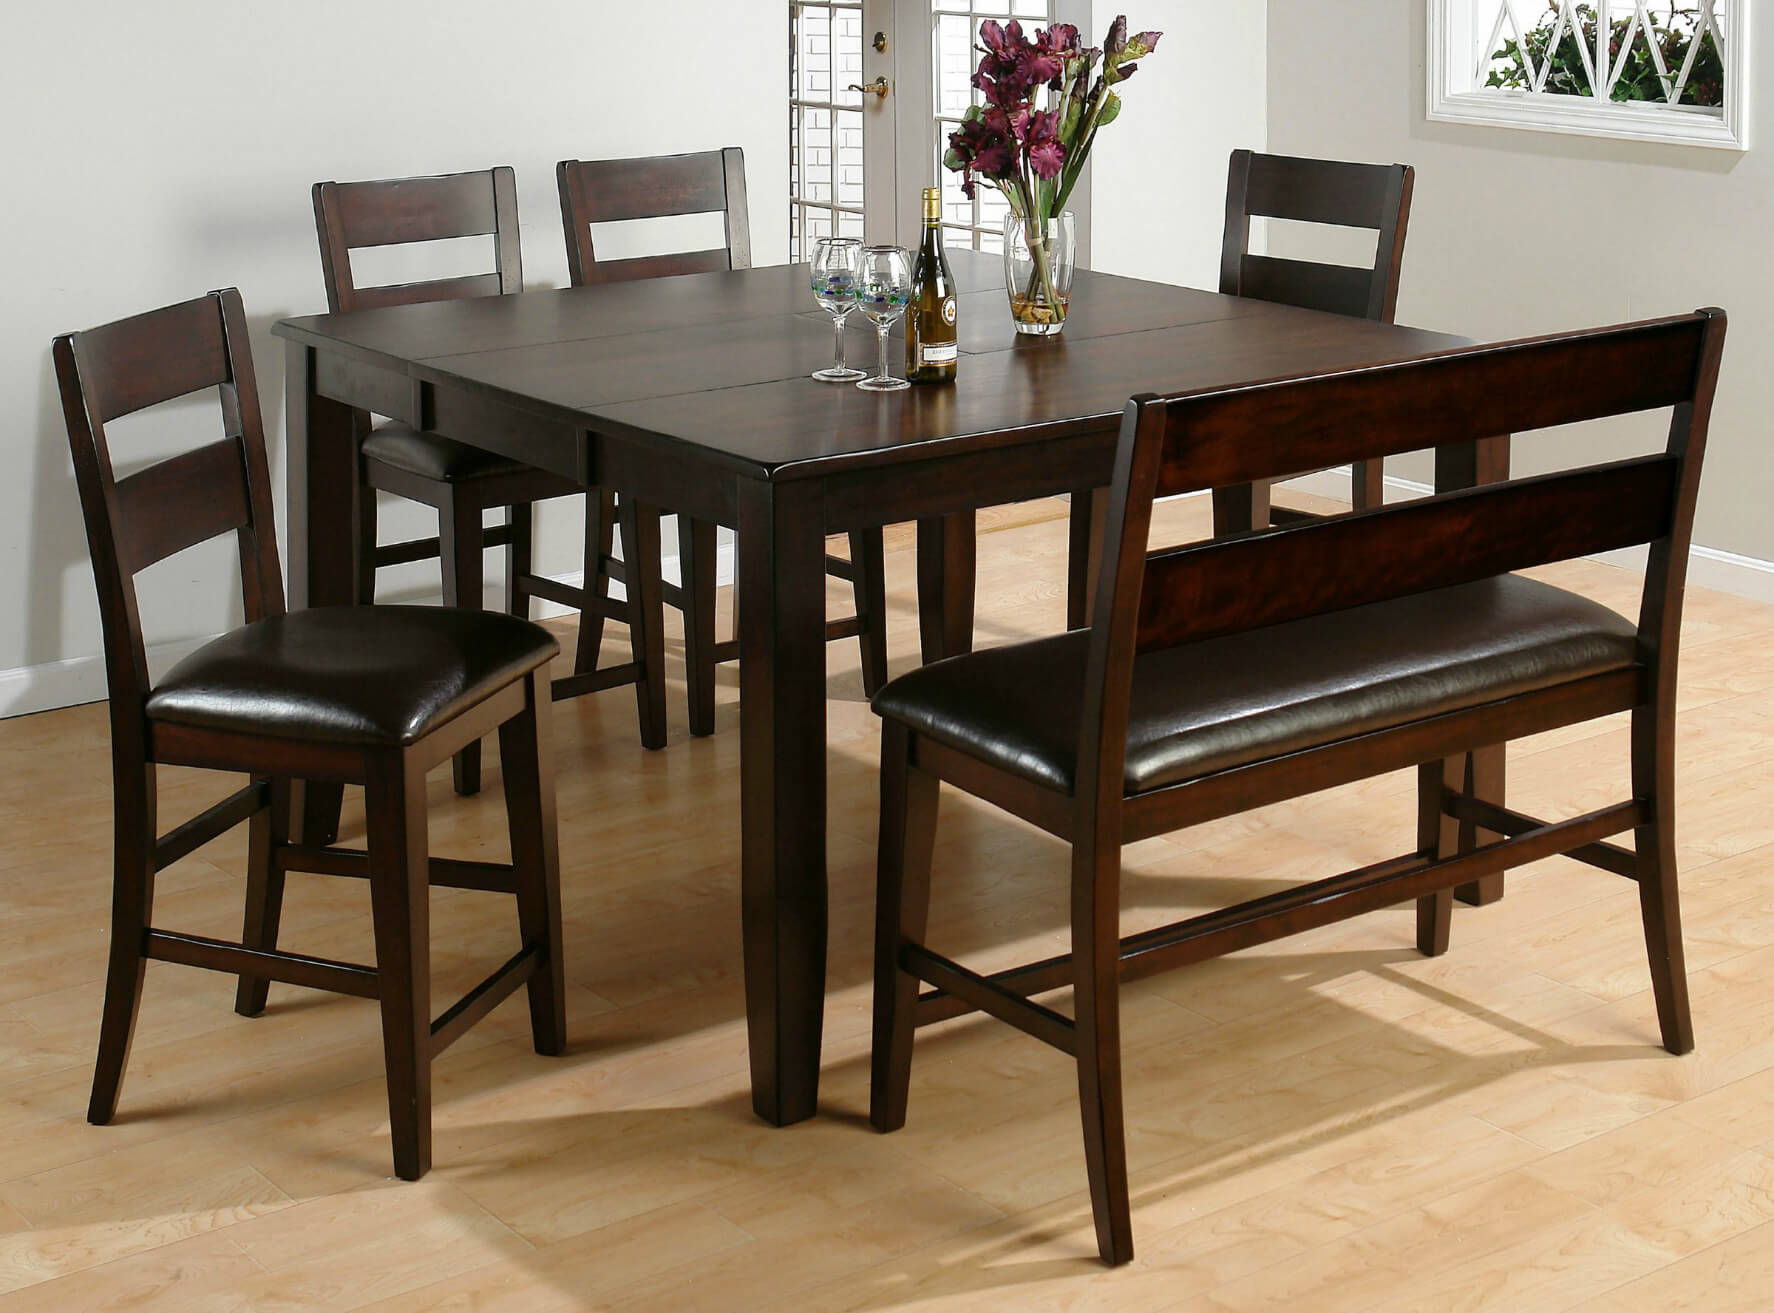 26 big small dining room sets with bench seating for Best table for small square dining room